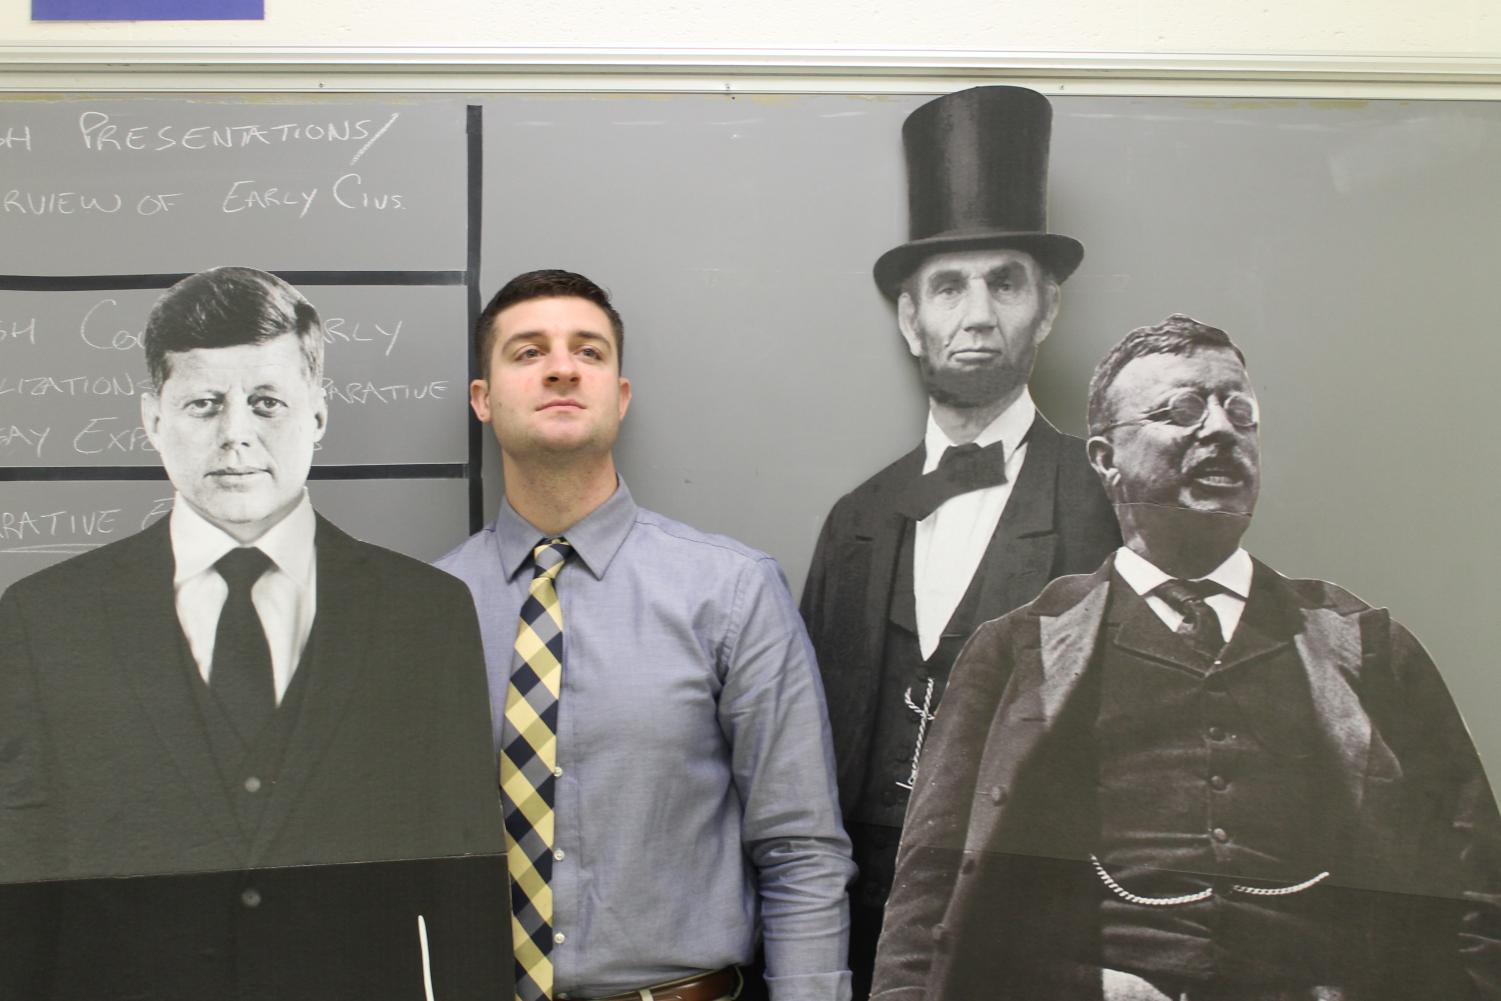 Mr. Miller stands proudly with his favorite president, TR, along with some other great leaders of our country. Miller said Roosevelt is his favorite president because of how he influenced the people of the United States.